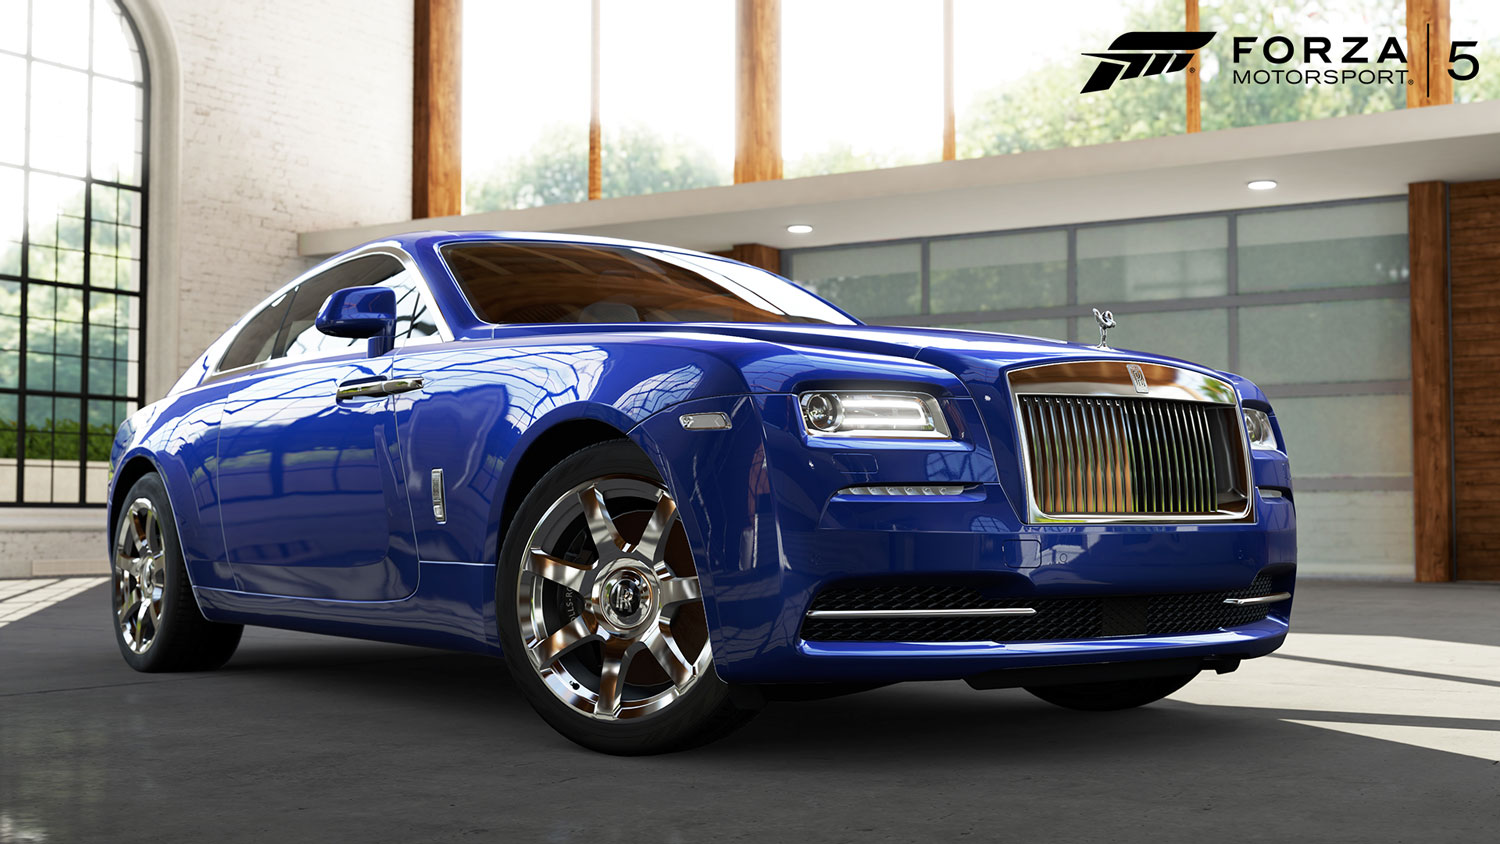 Rolls royce motor cars our highlights from a spectacular 2014 rolls royce motor cars the epitome of luxury made its video game debut wraith the most powerful and dynamic rolls royce in history exclusively in forza voltagebd Gallery